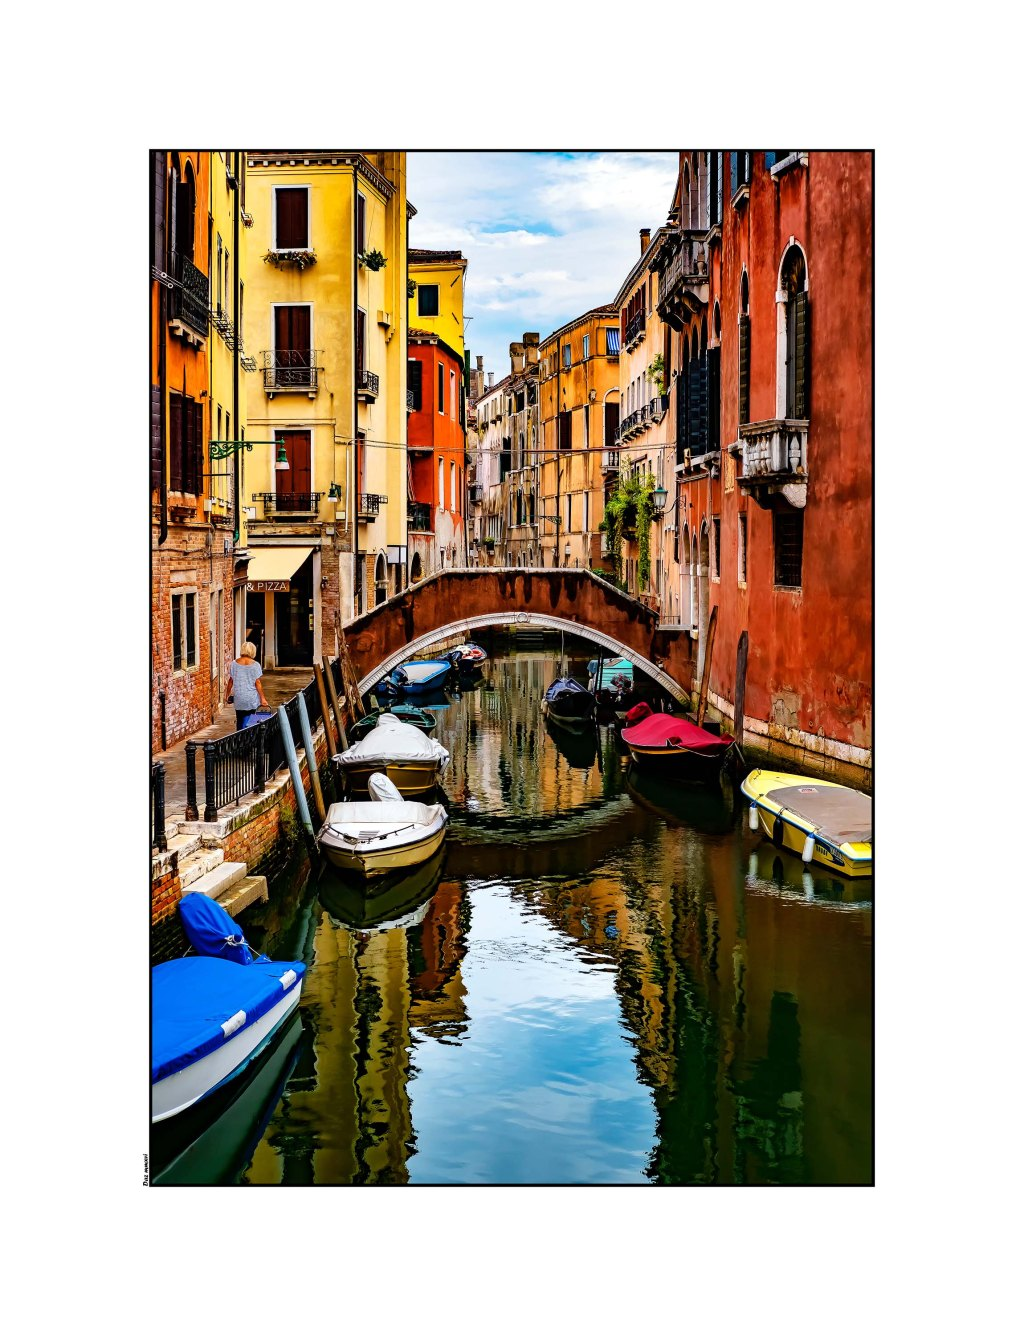 _dsf2751venezia-canal-2-optomized